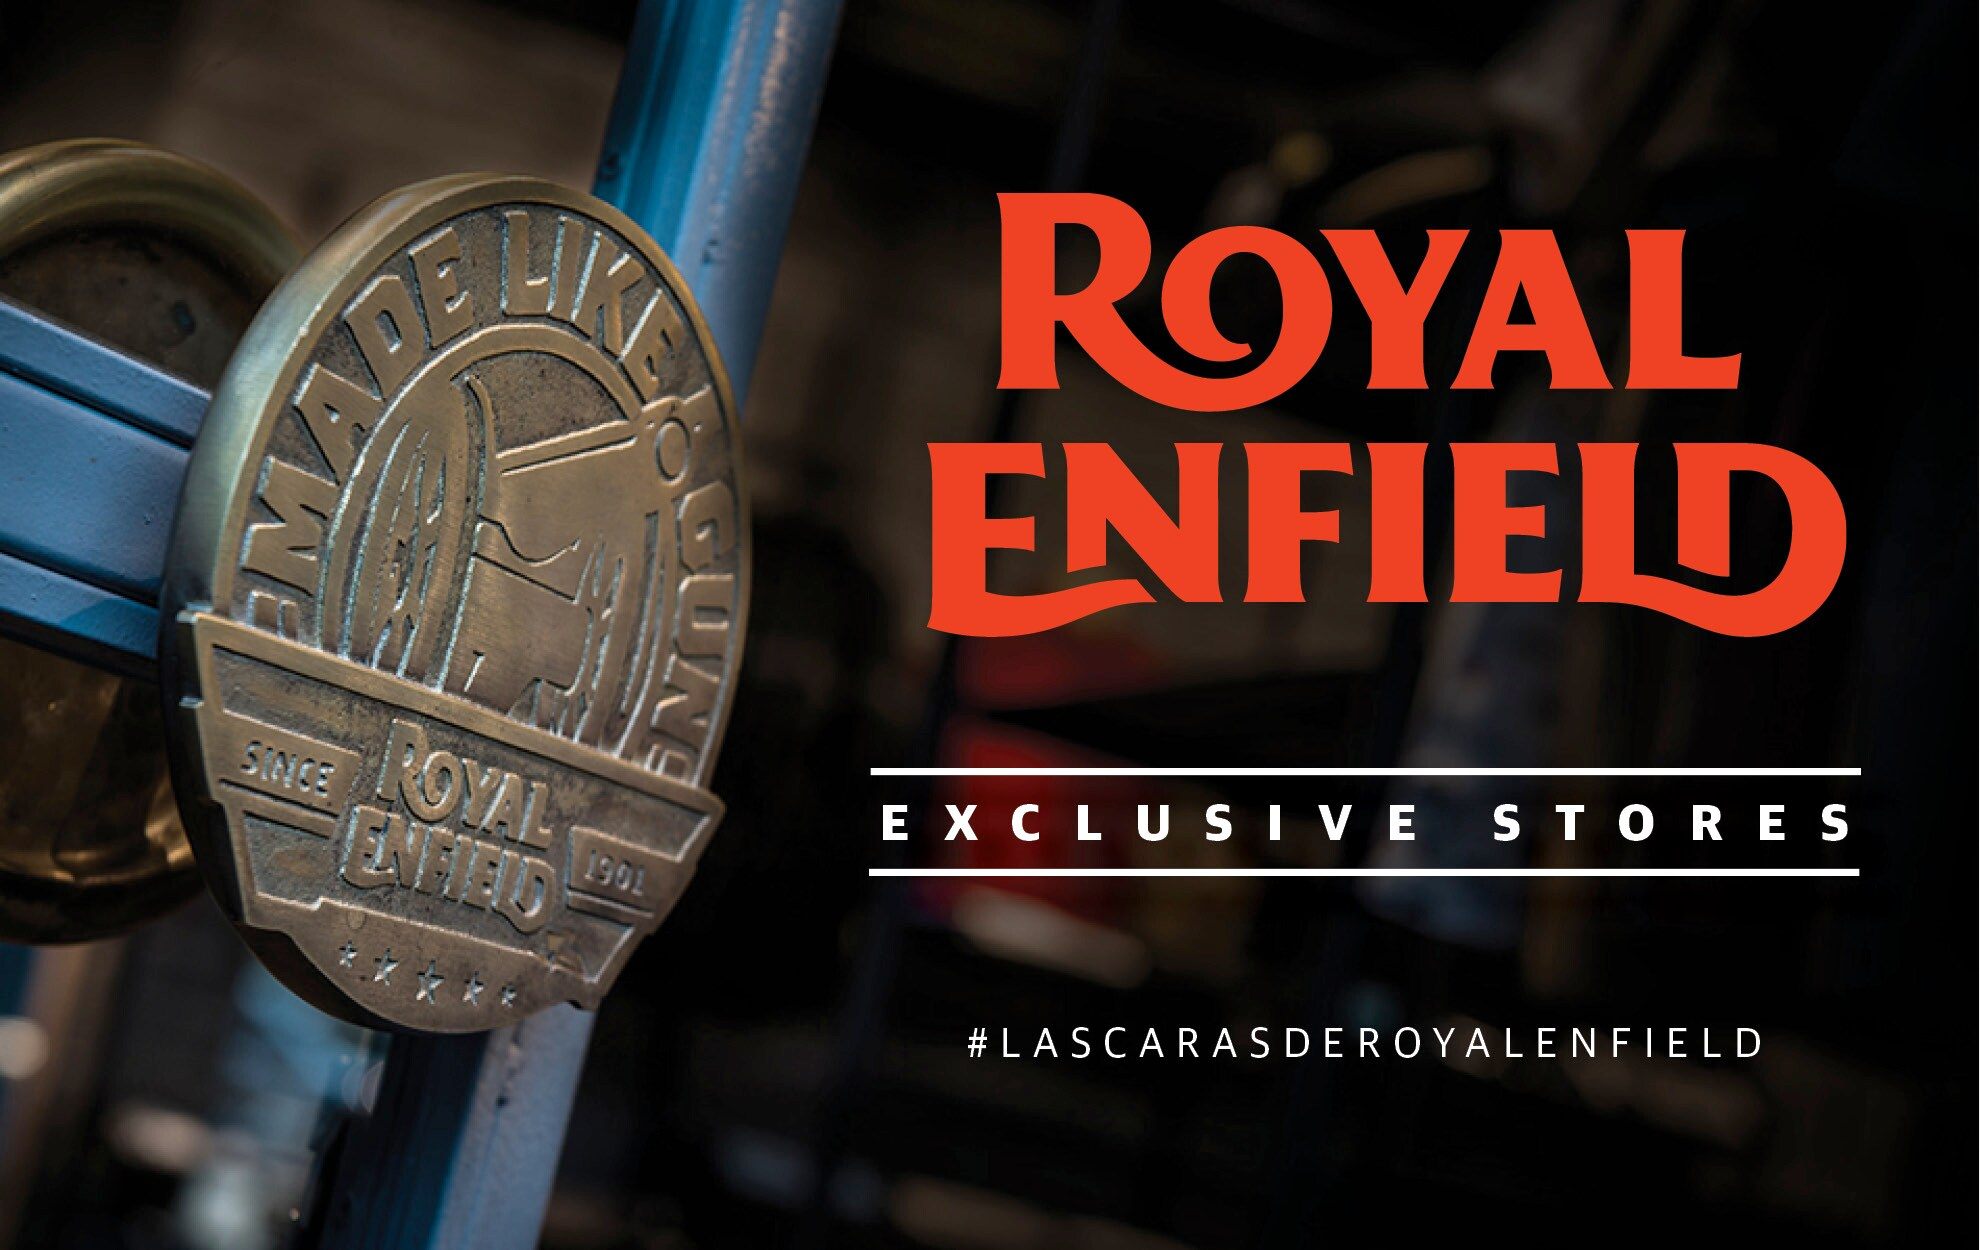 Las caras de Royal Enfield - Madrid